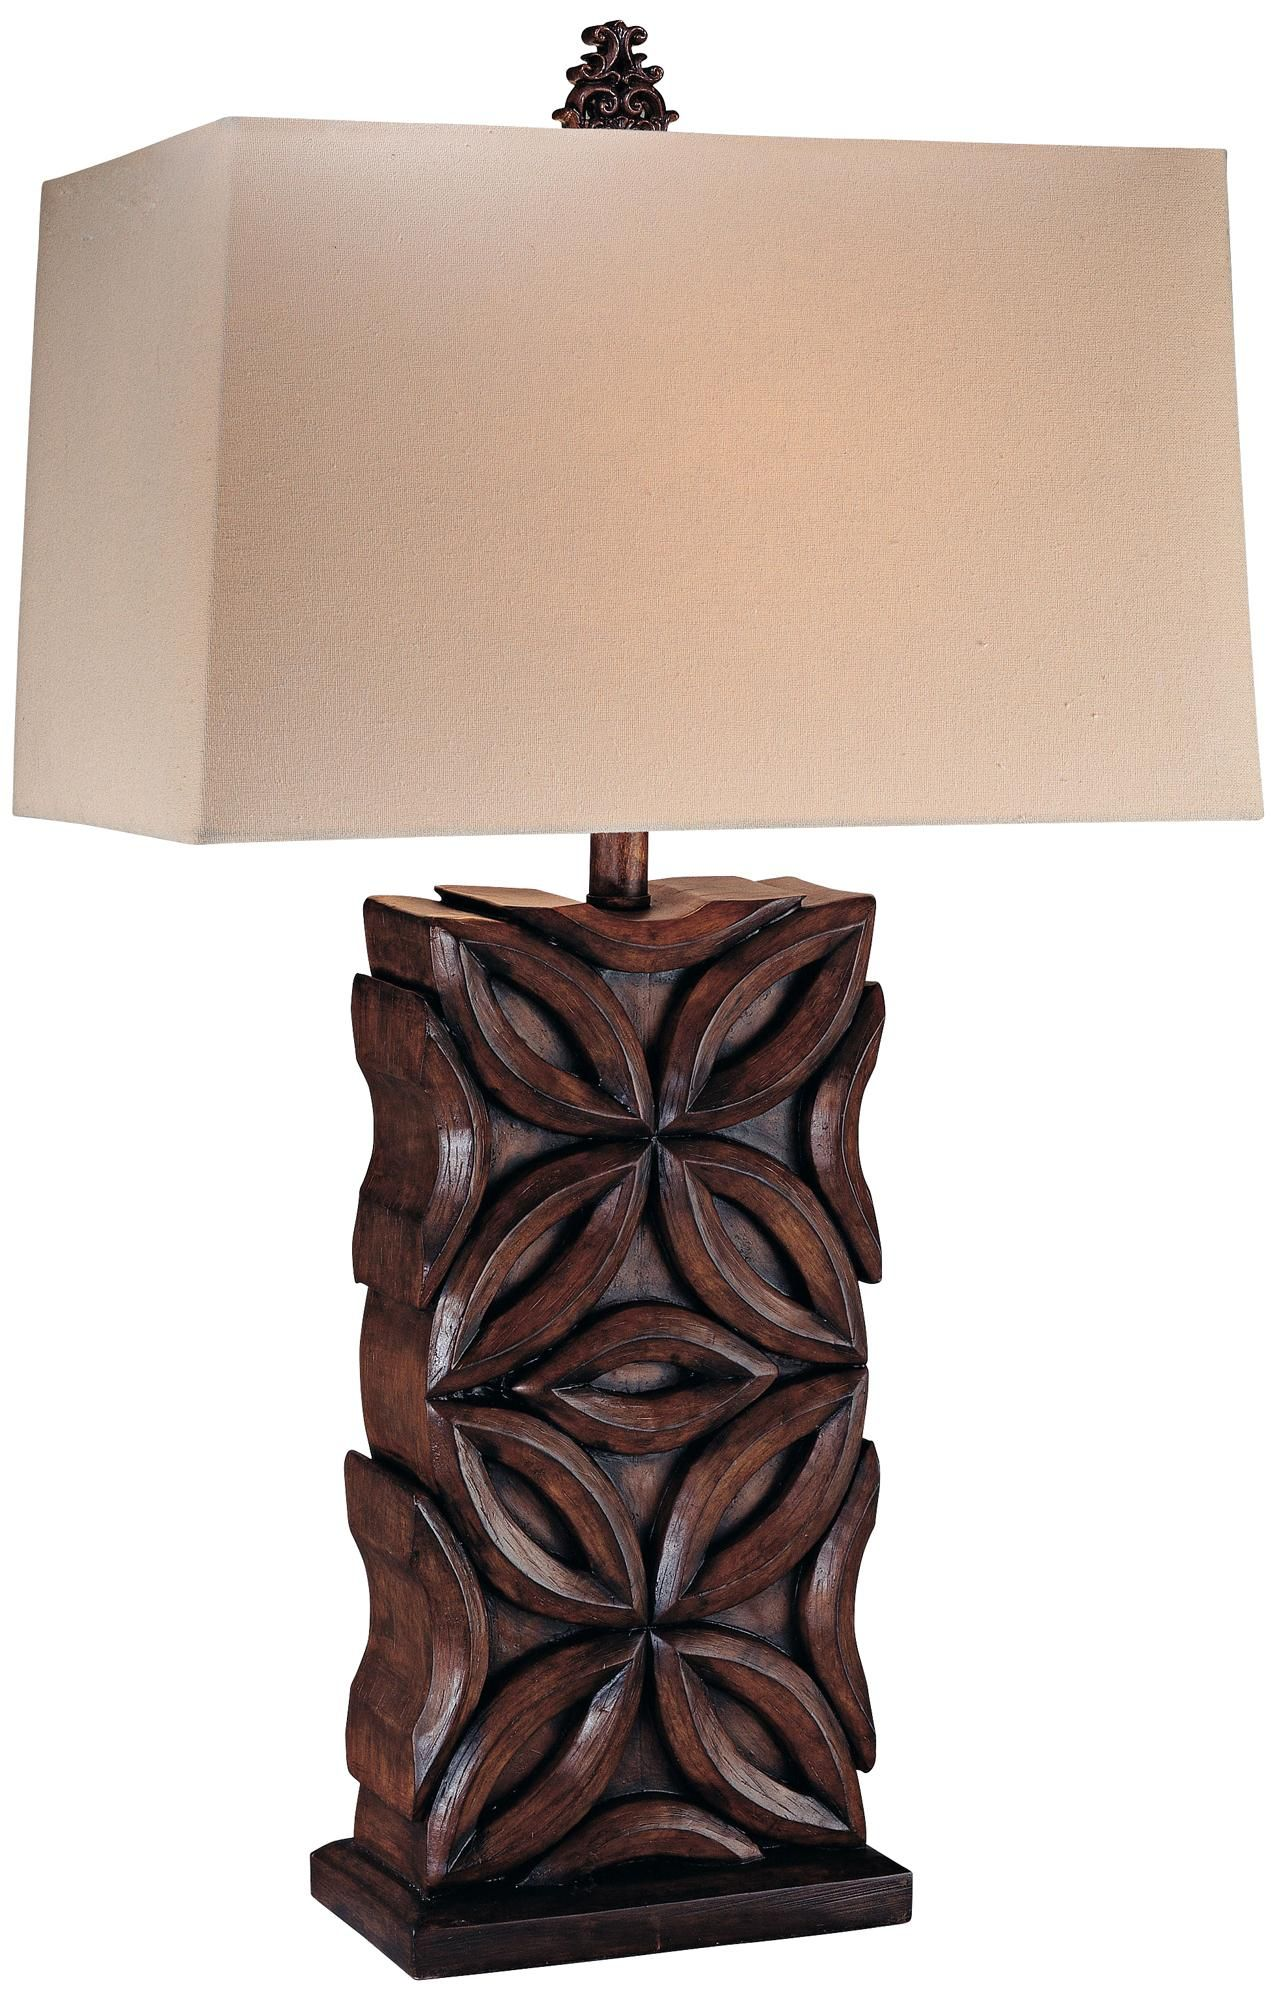 Ambience cherry carved faux wood table lamp home ideas ambience cherry carved faux wood table lamp aloadofball Image collections